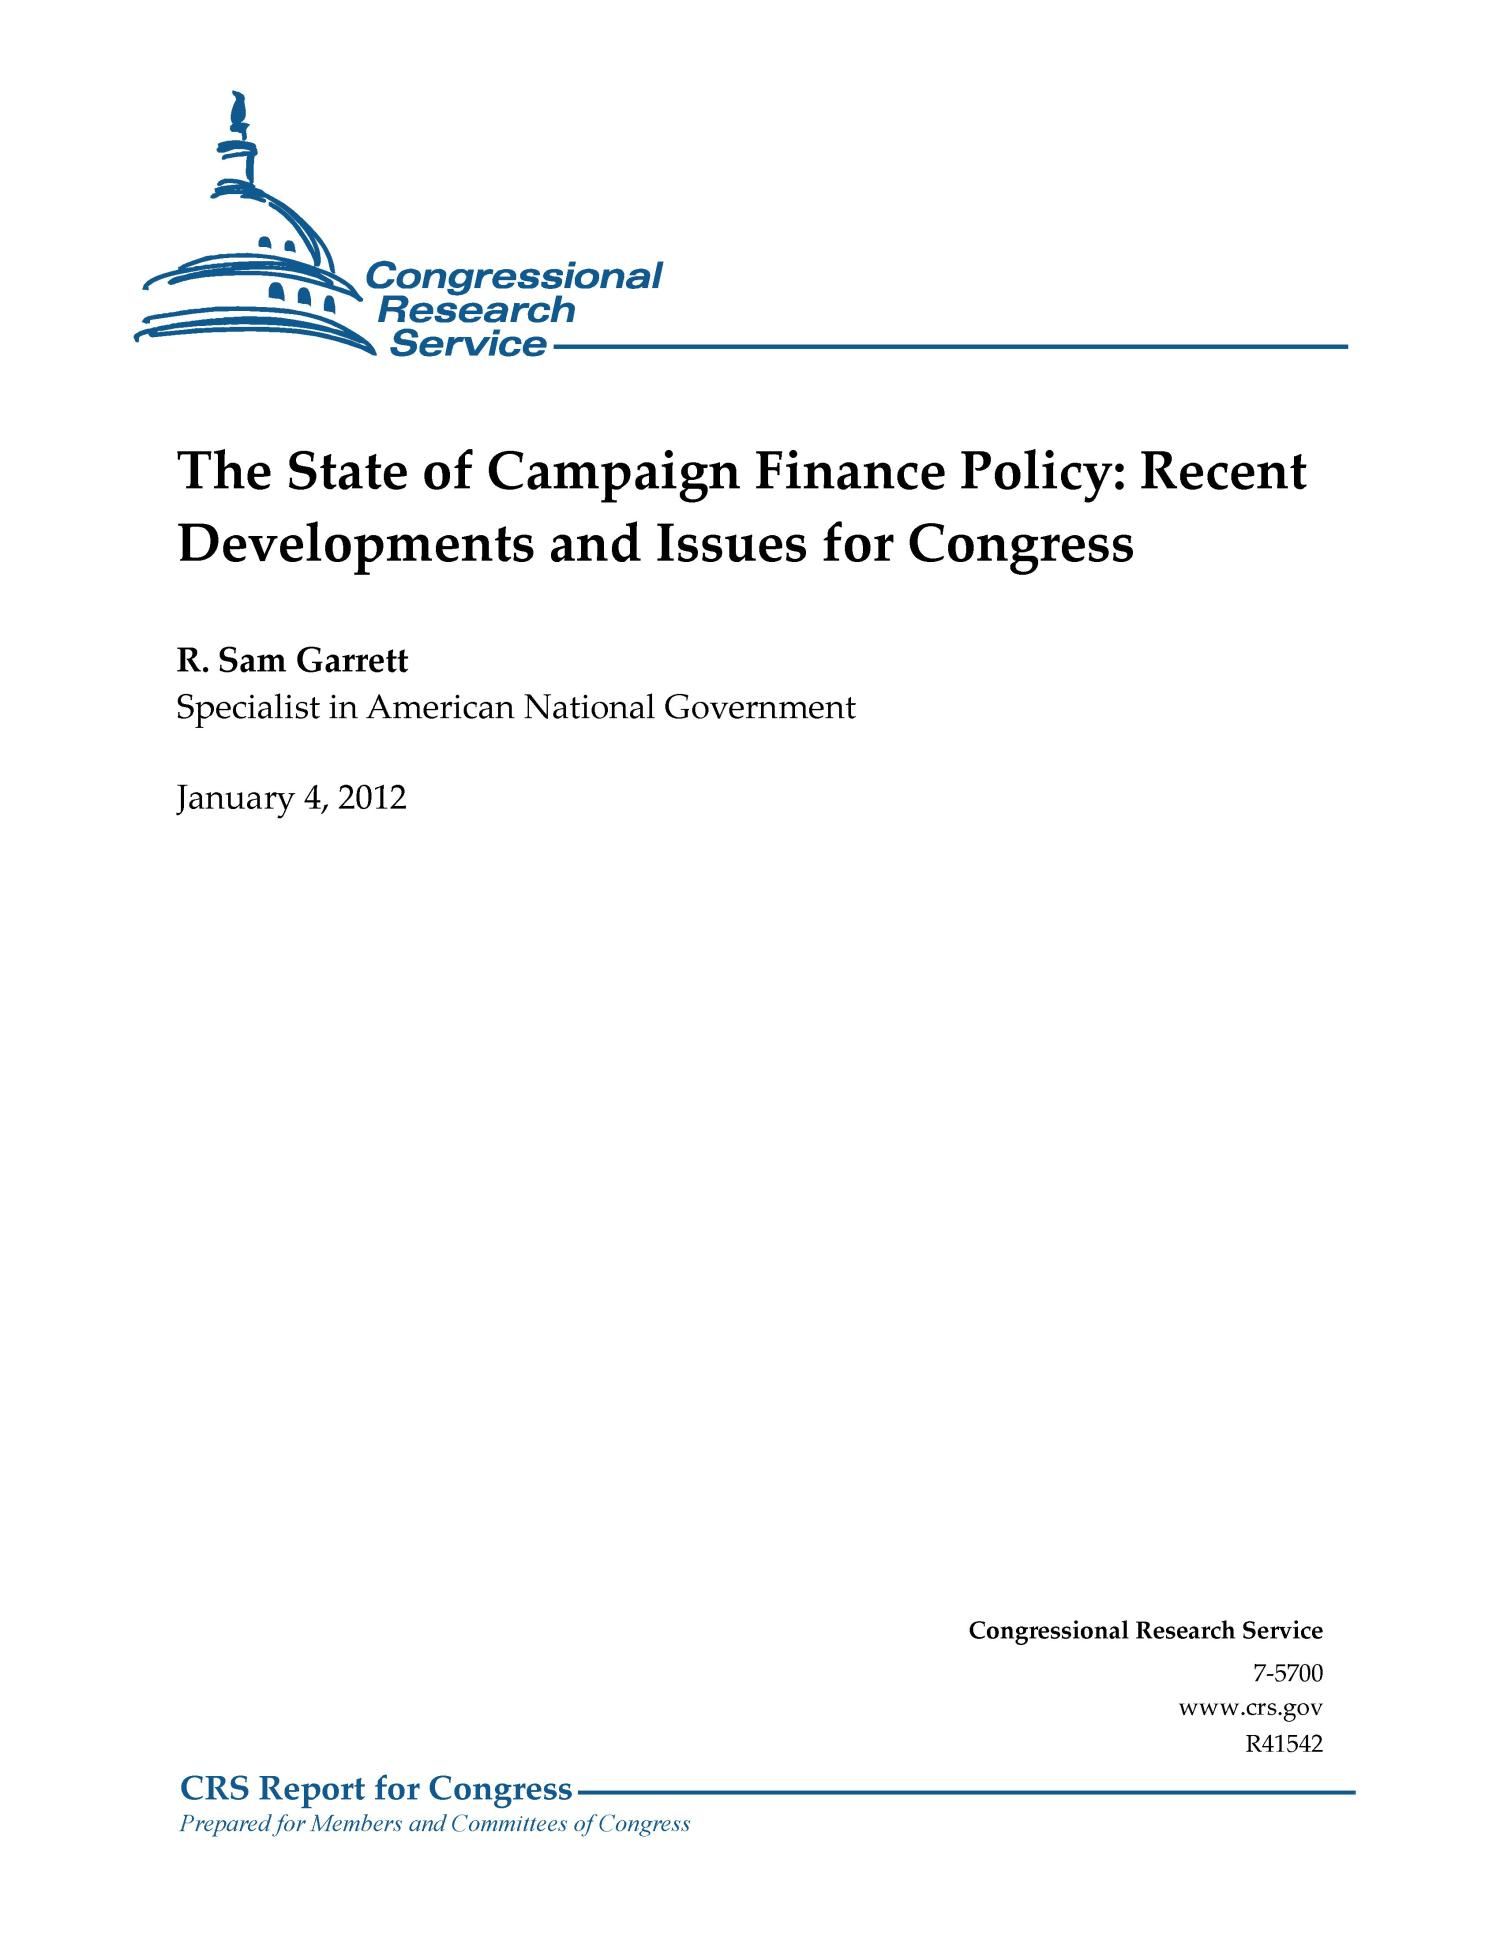 The financial policy of the state